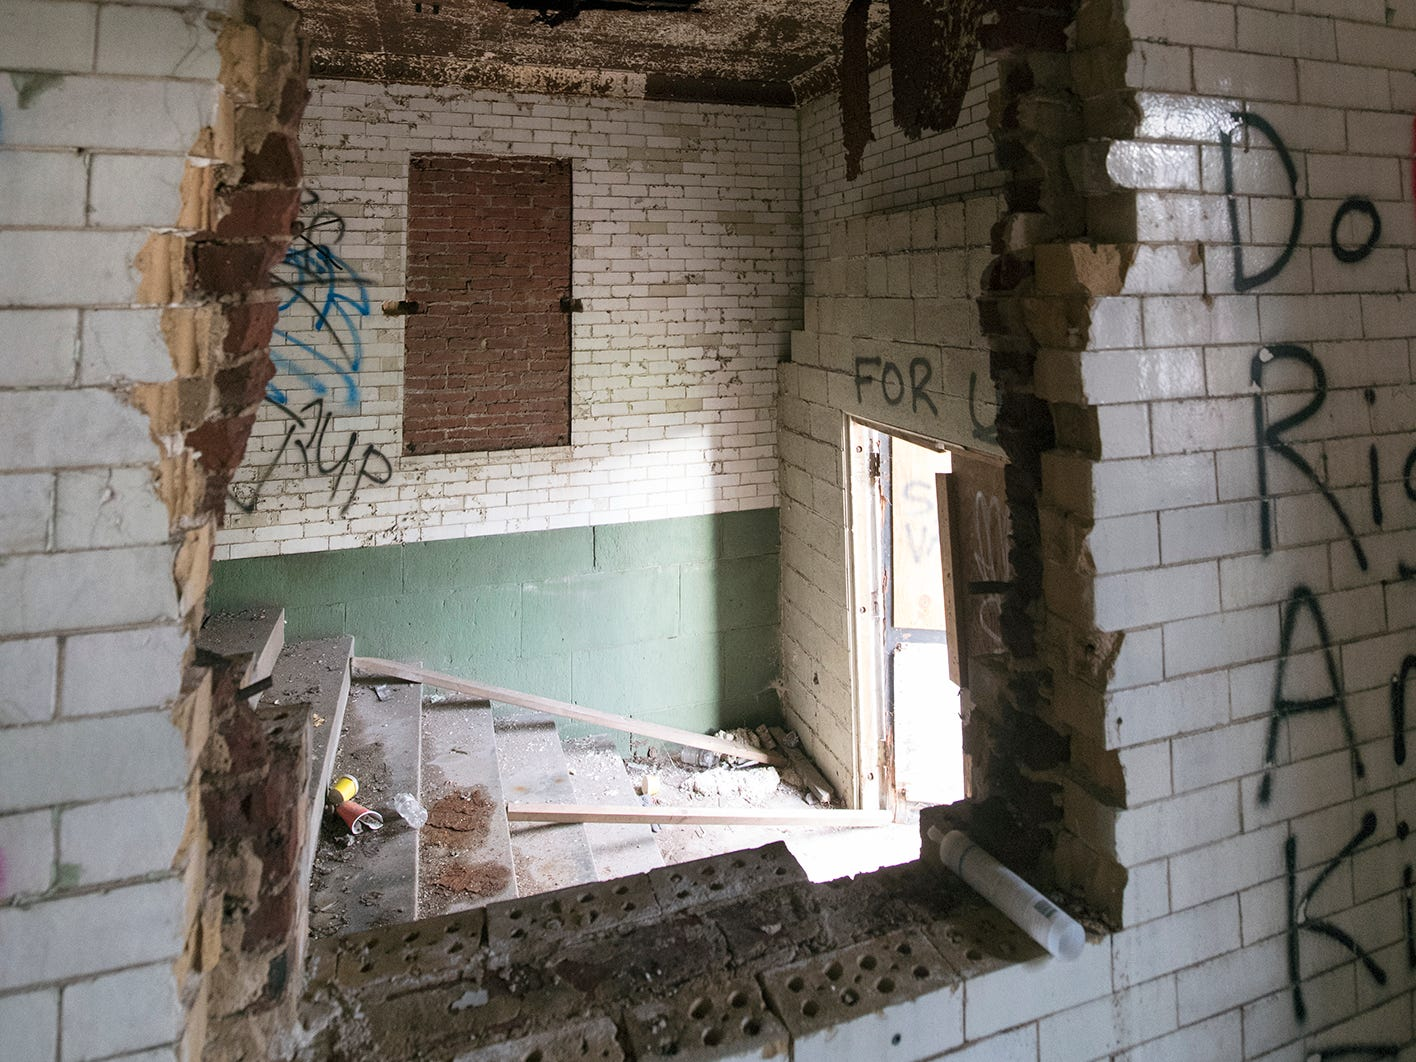 This is looking into the front foyer from a side room inside the old York County Prison.